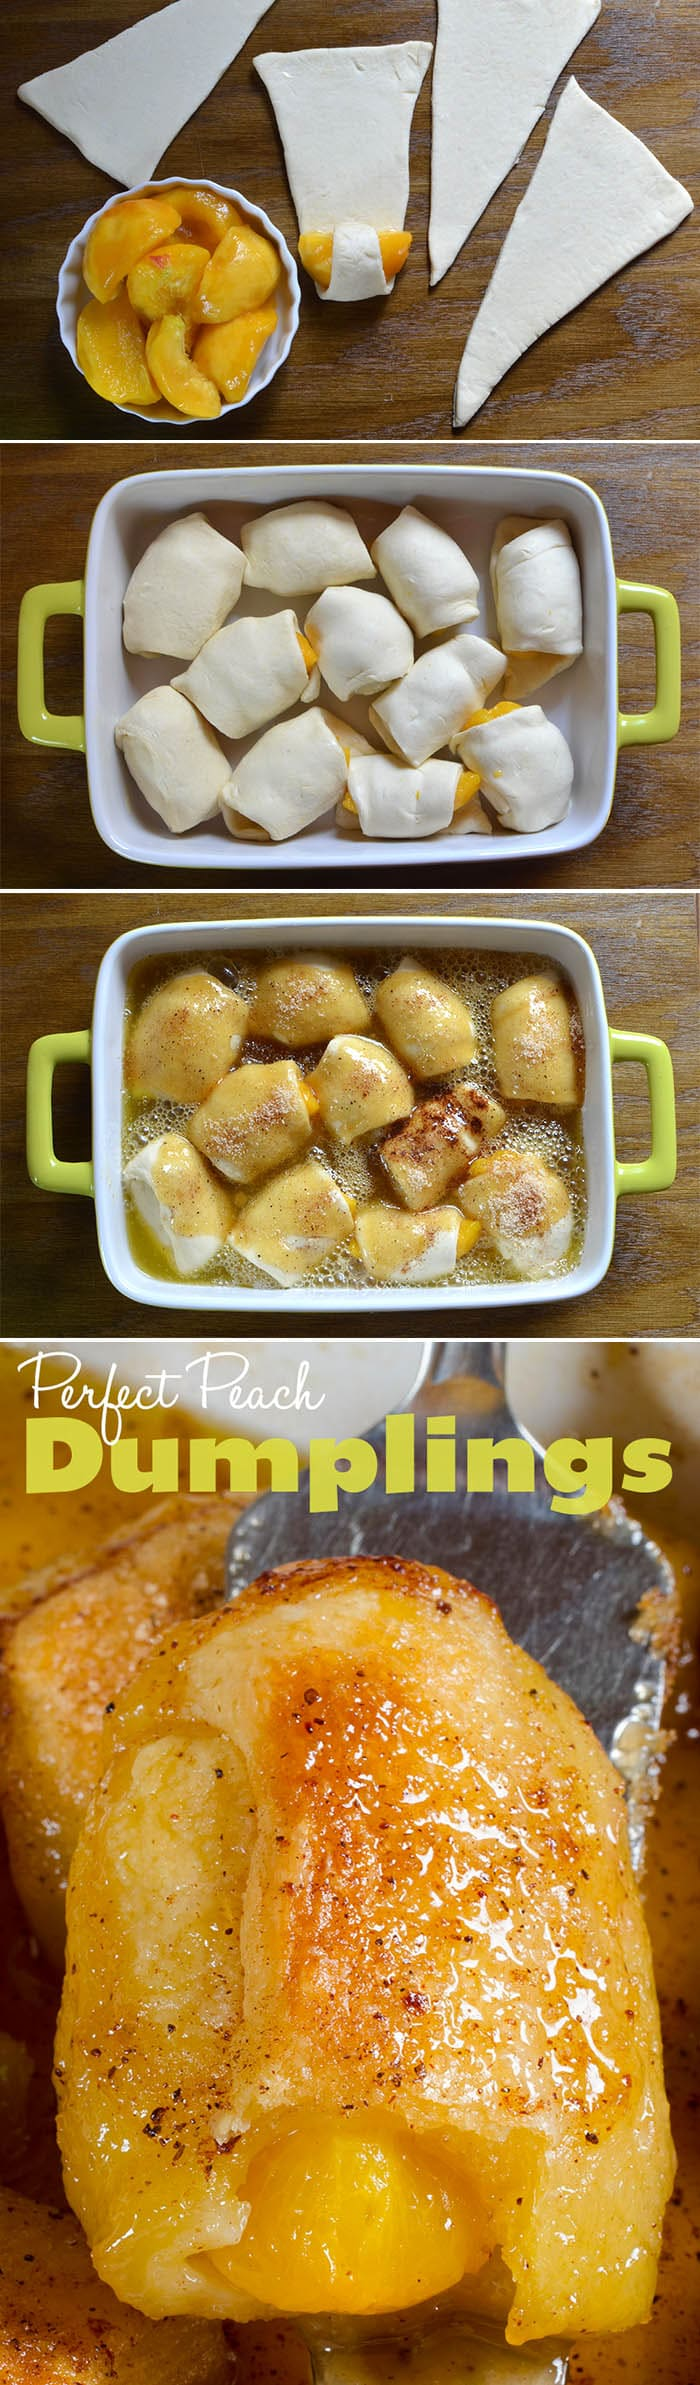 Just peachy! A dumpling dessert you can serve at any occasion. Peach dumplings - amazing Southern food dessert recipes